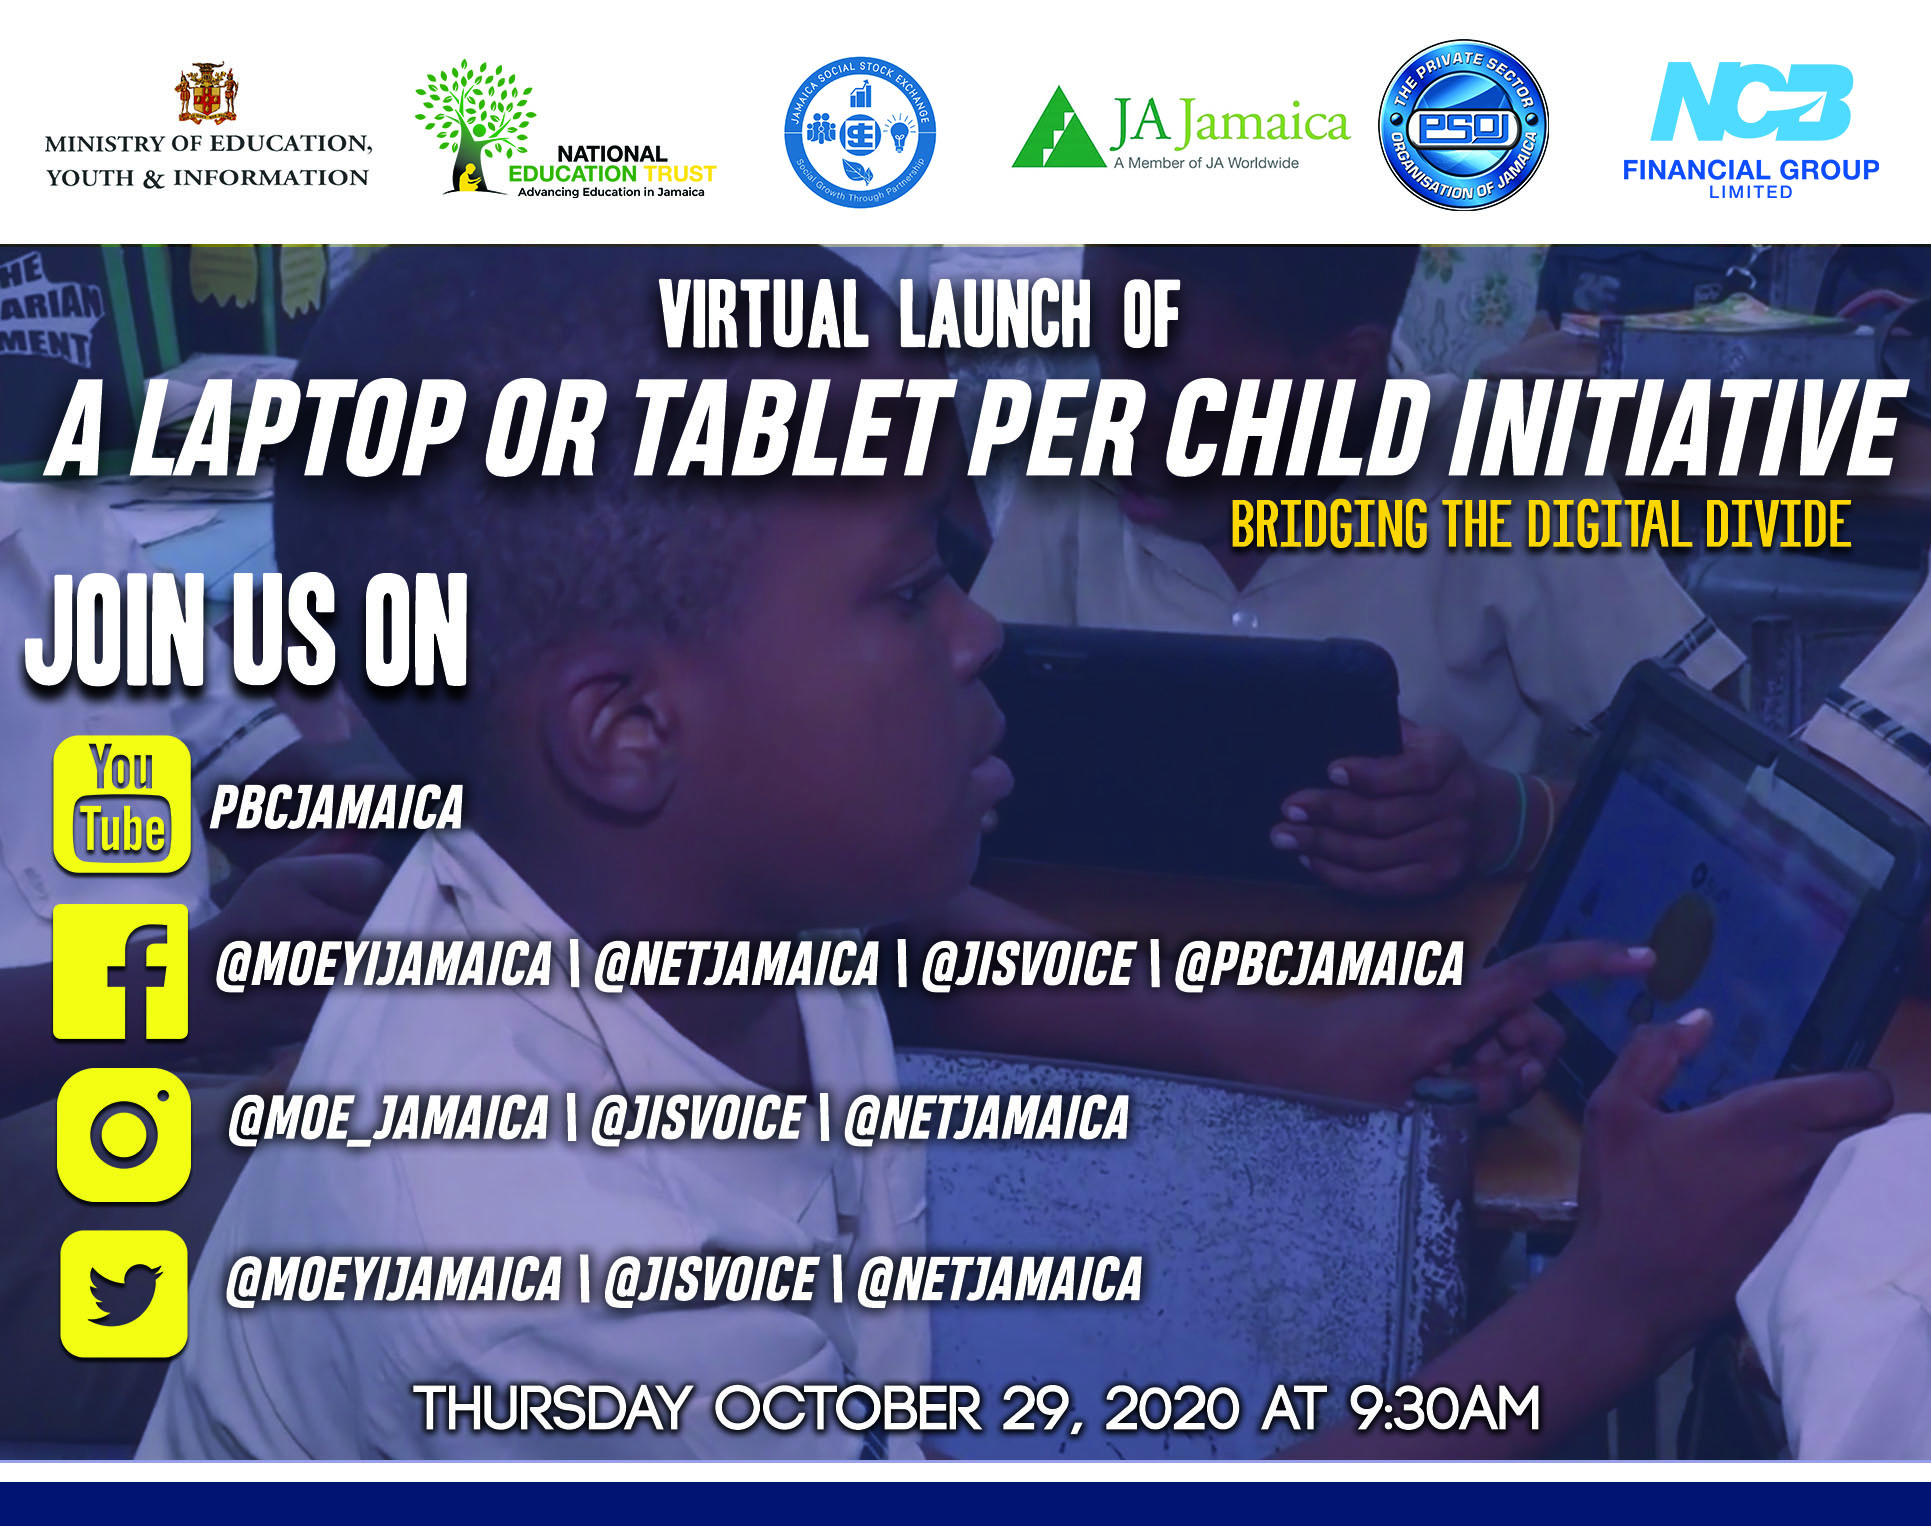 Launch of Laptop / Tablet Per Child Initiative